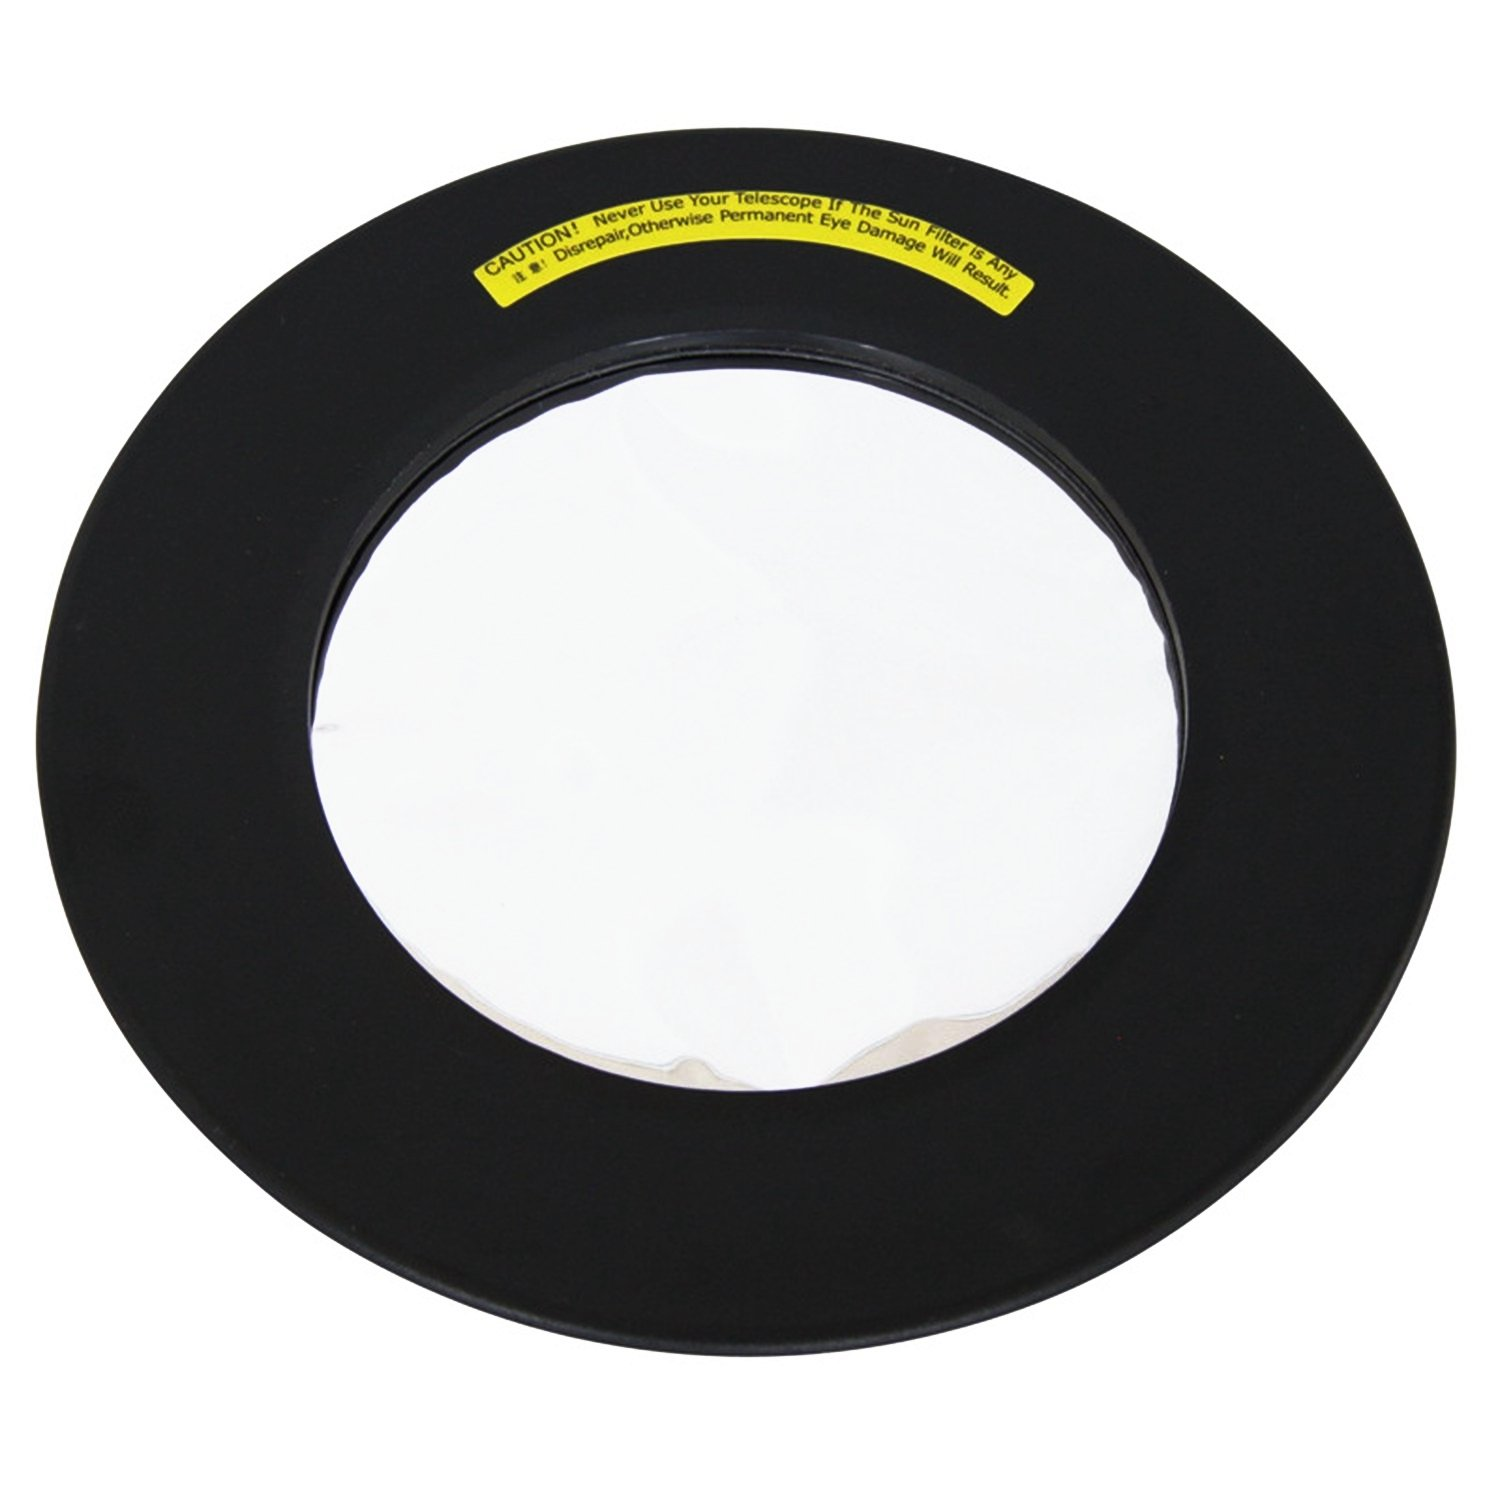 Astromania solar filter, 114mm - let you also do astronomy during the day